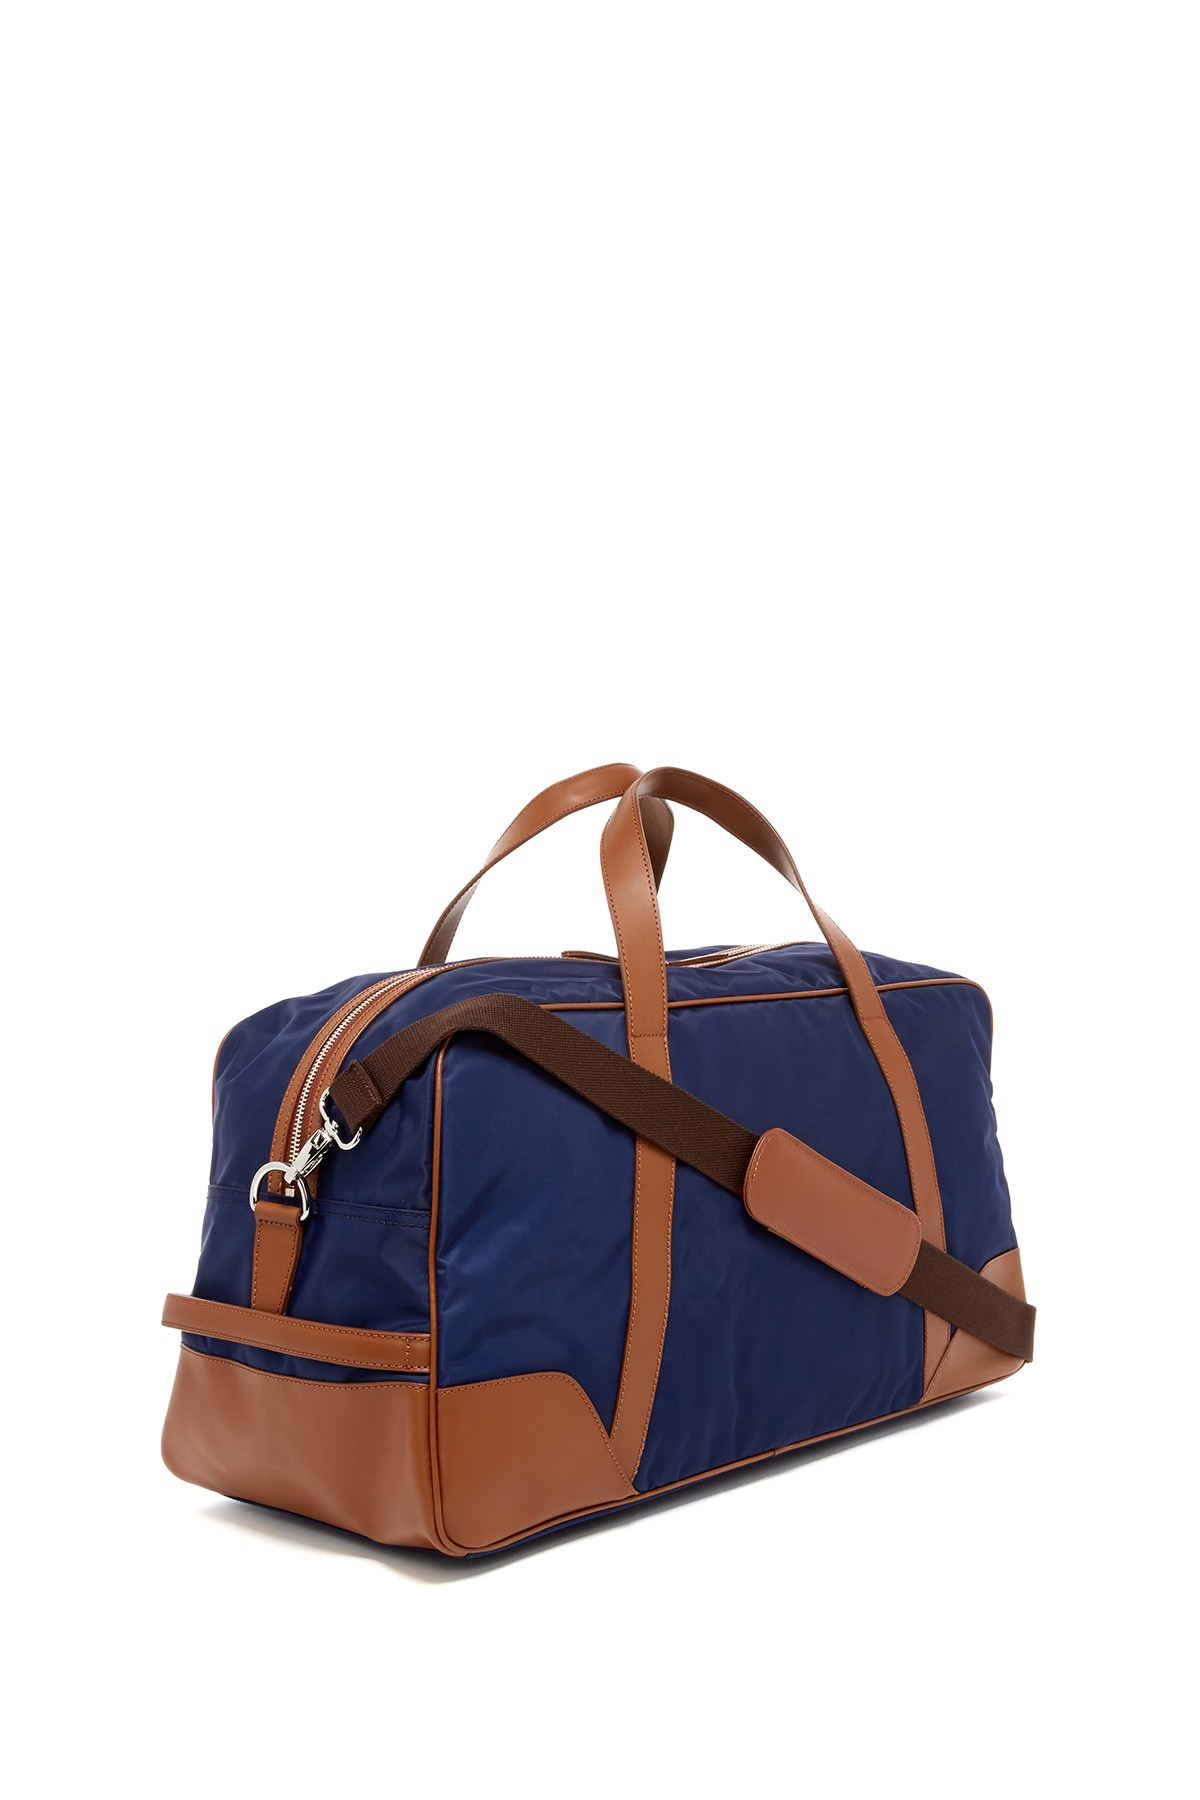 Cole Haan Nylon Duffle Bag In Blue For Men Lyst